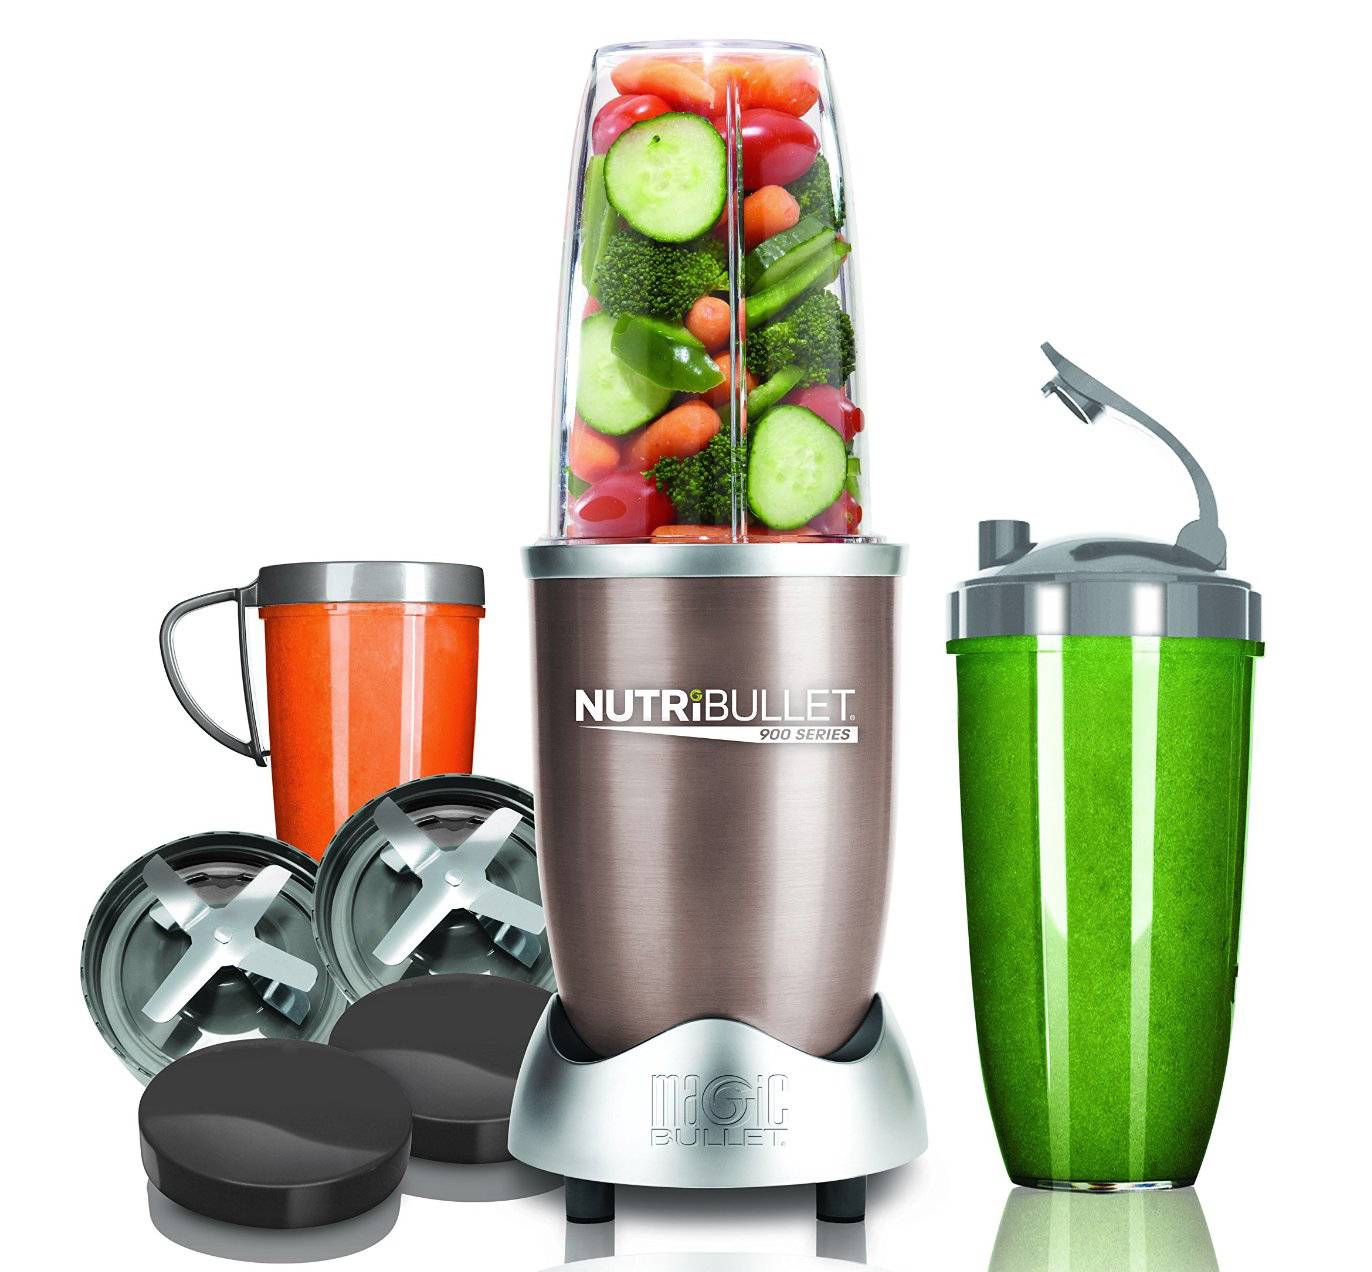 NutriBullet Pro 900: The Right Smoothie Maker